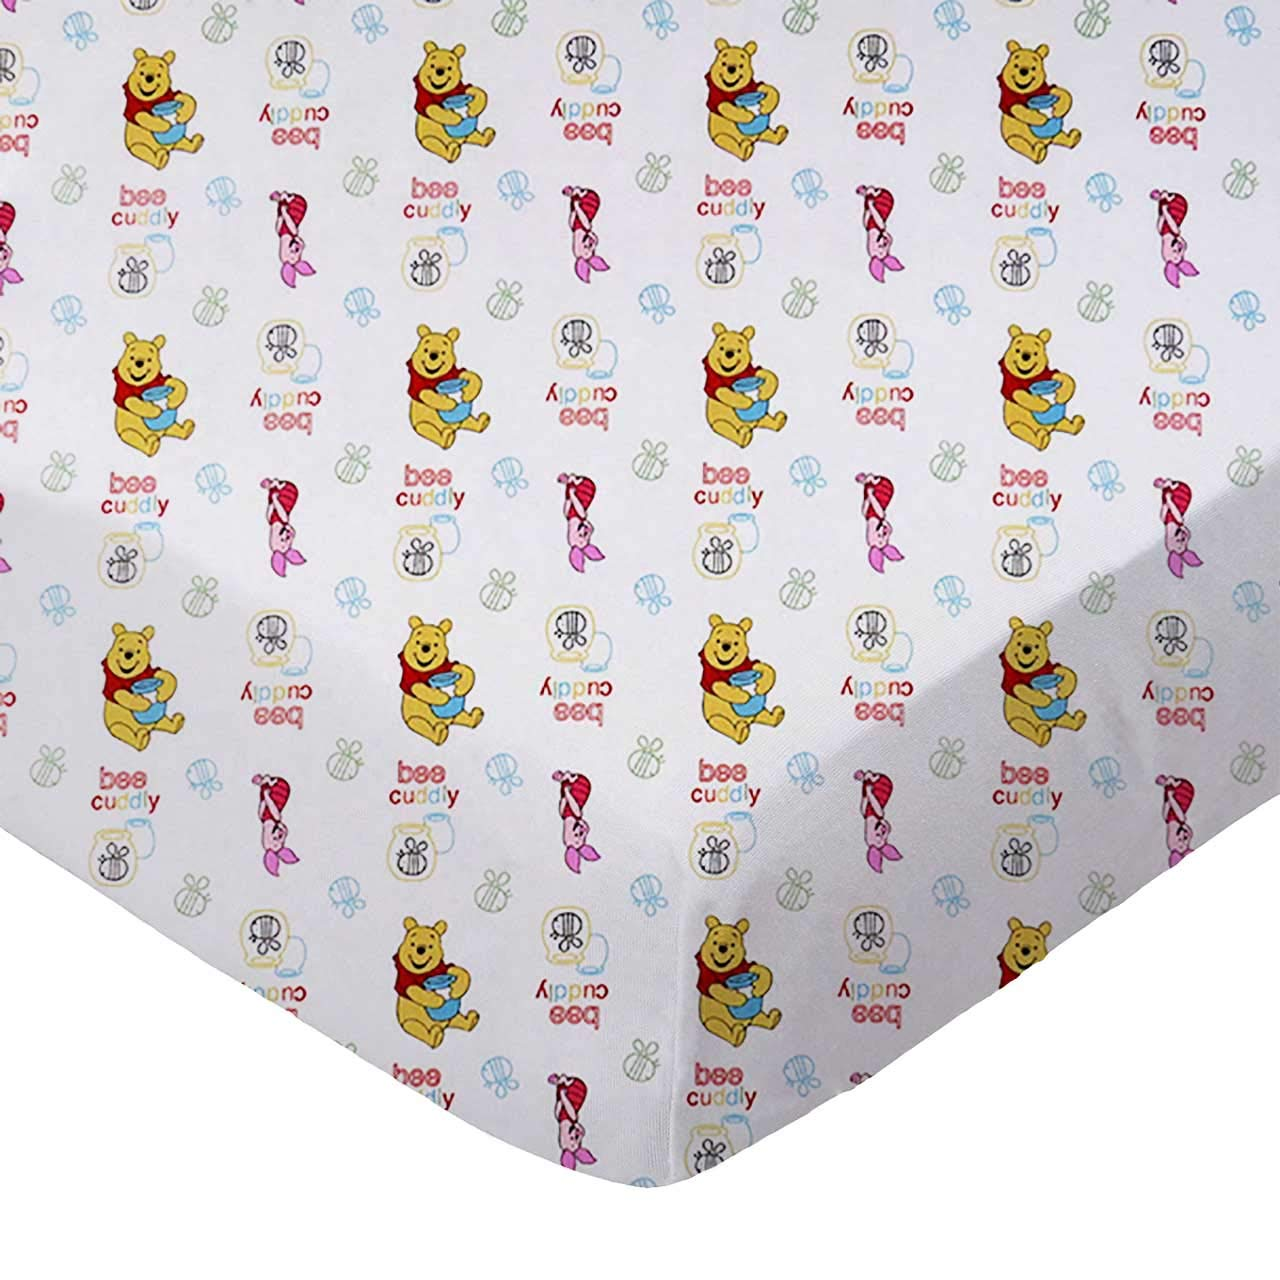 SheetWorld Fitted 100% Cotton Percale Portable Mini Crib Sheet 24 x 38, Pooh Bee Cuddly, Made in USA by SHEETWORLD.COM